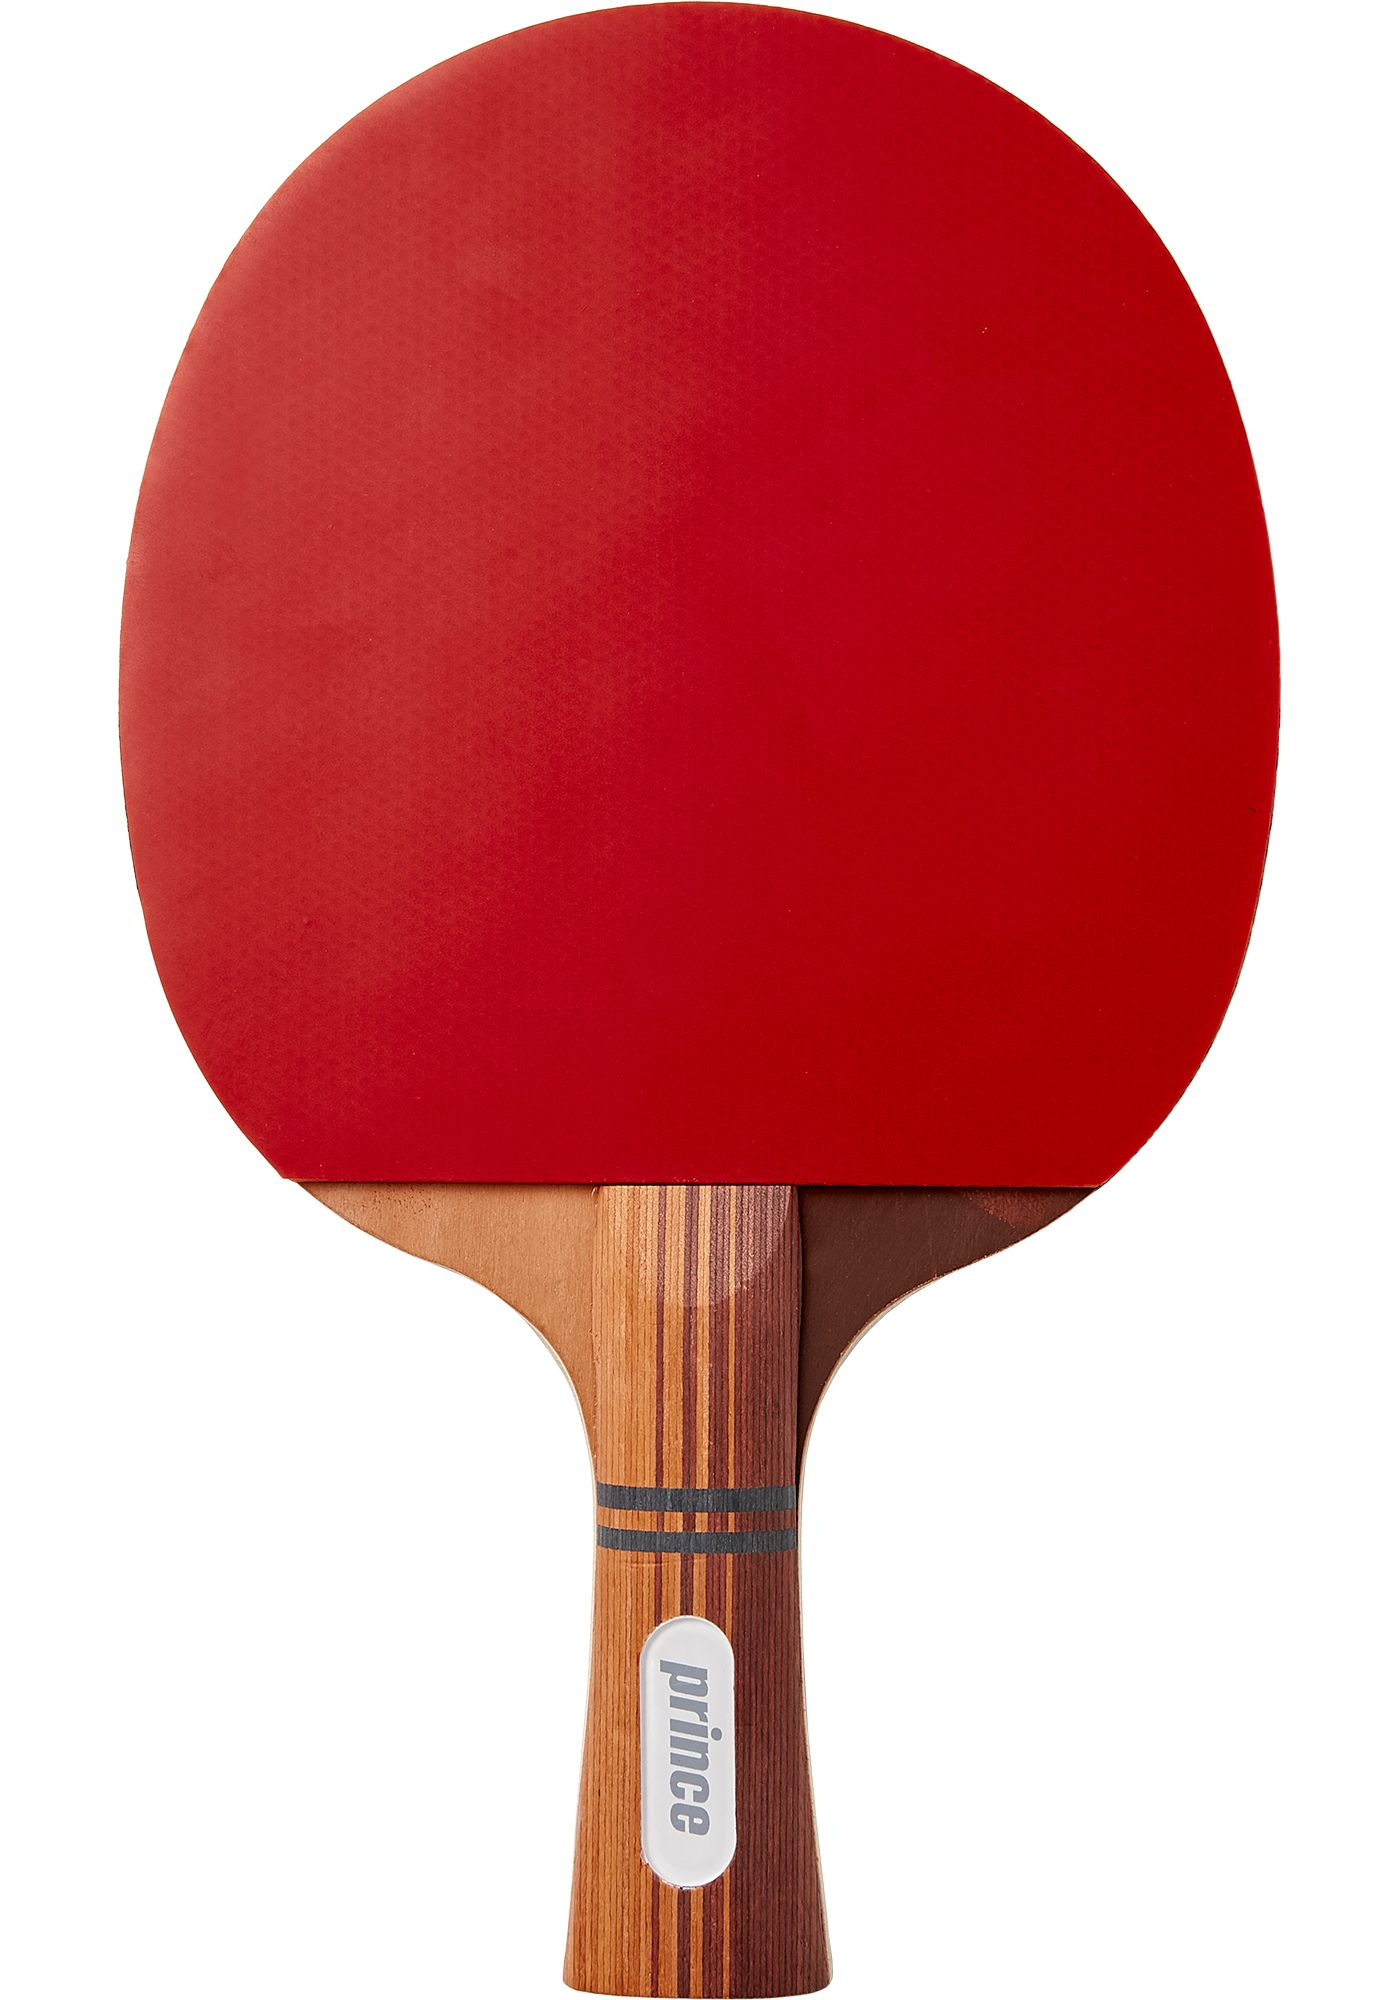 Prince Contender Table Tennis Racket